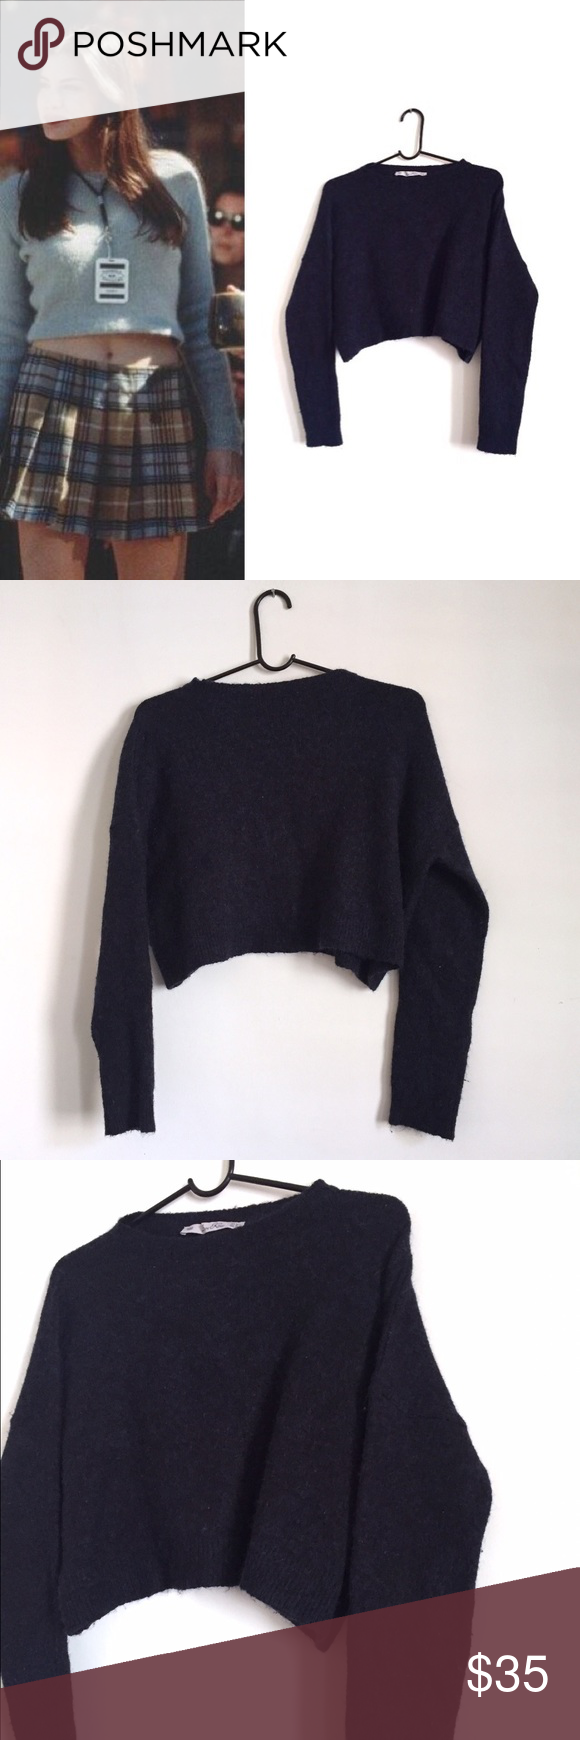 Zara Knit Cropped Navy Blue Sweater